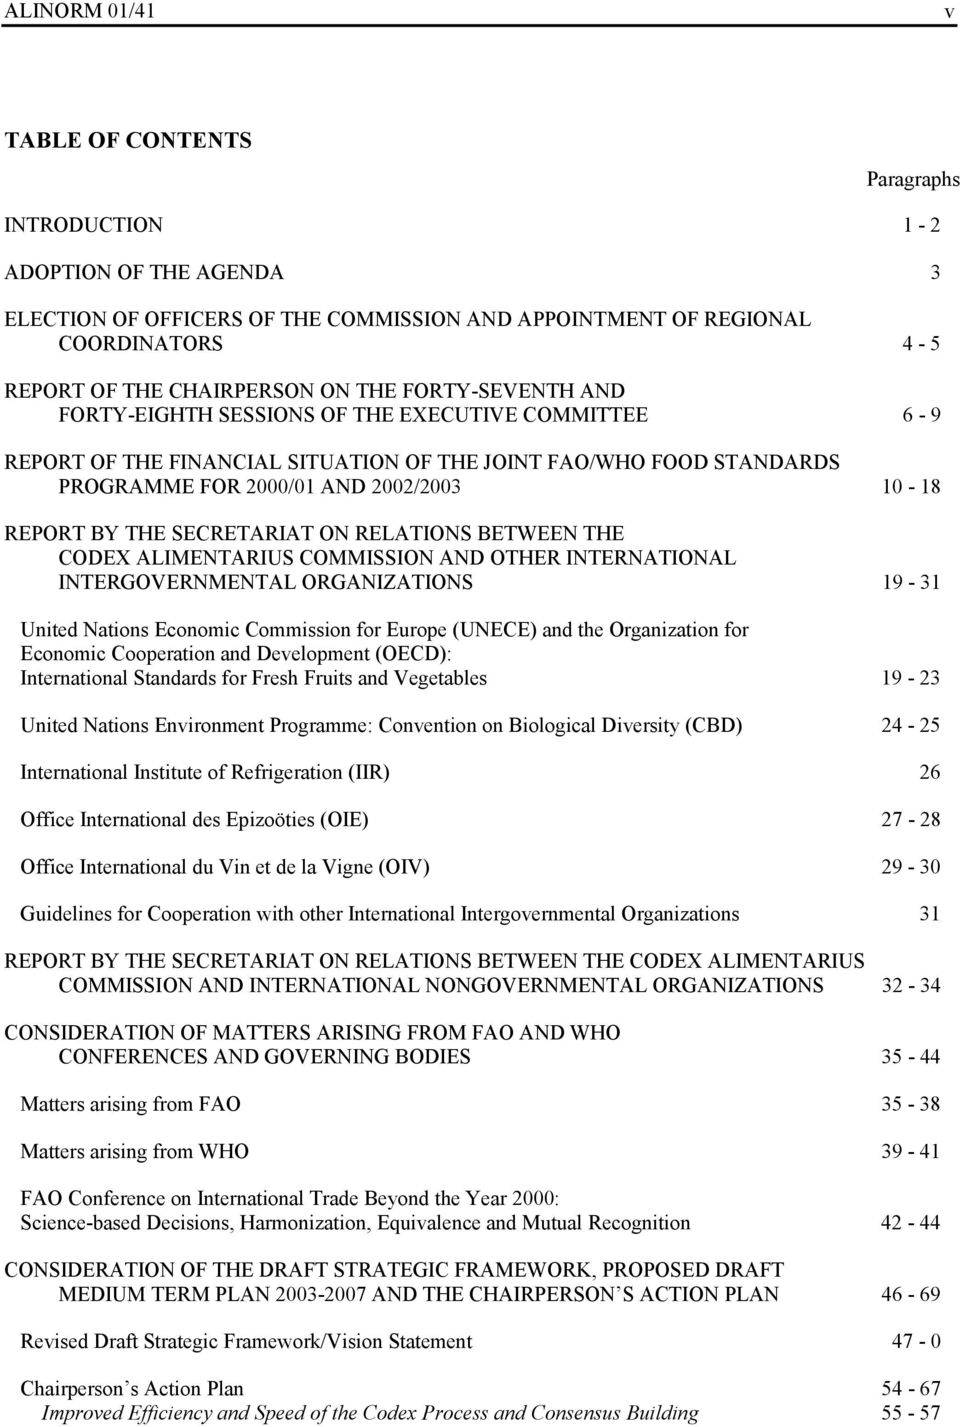 THE SECRETARIAT ON RELATIONS BETWEEN THE CODEX ALIMENTARIUS COMMISSION AND OTHER INTERNATIONAL INTERGOVERNMENTAL ORGANIZATIONS 19-31 United Nations Economic Commission for Europe (UNECE) and the